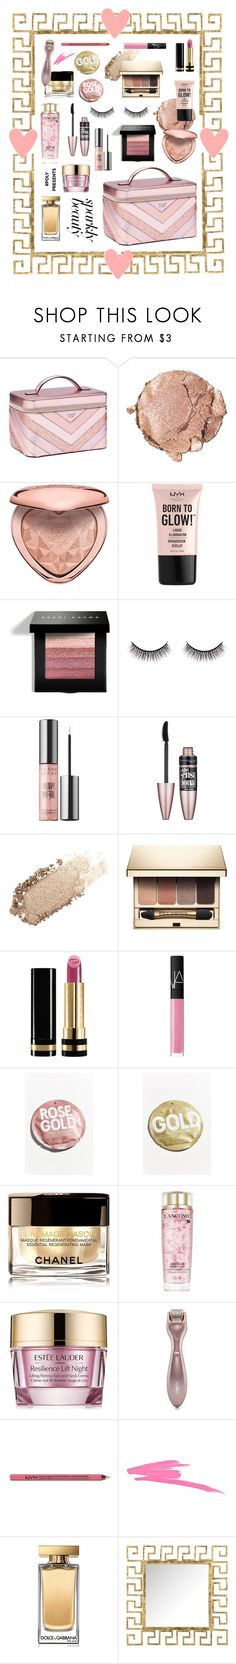 """#PolyPresents: Sparkly Beauty 💖⭐️"" by denizatay9 ❤ liked on Polyvore featuring beauty, Victoria's Secret, Stila, Too Faced Cosmetics, NYX, Bobbi Brown Cosmetics, Battington, Urban Decay, Maybelline and Chantecaille"